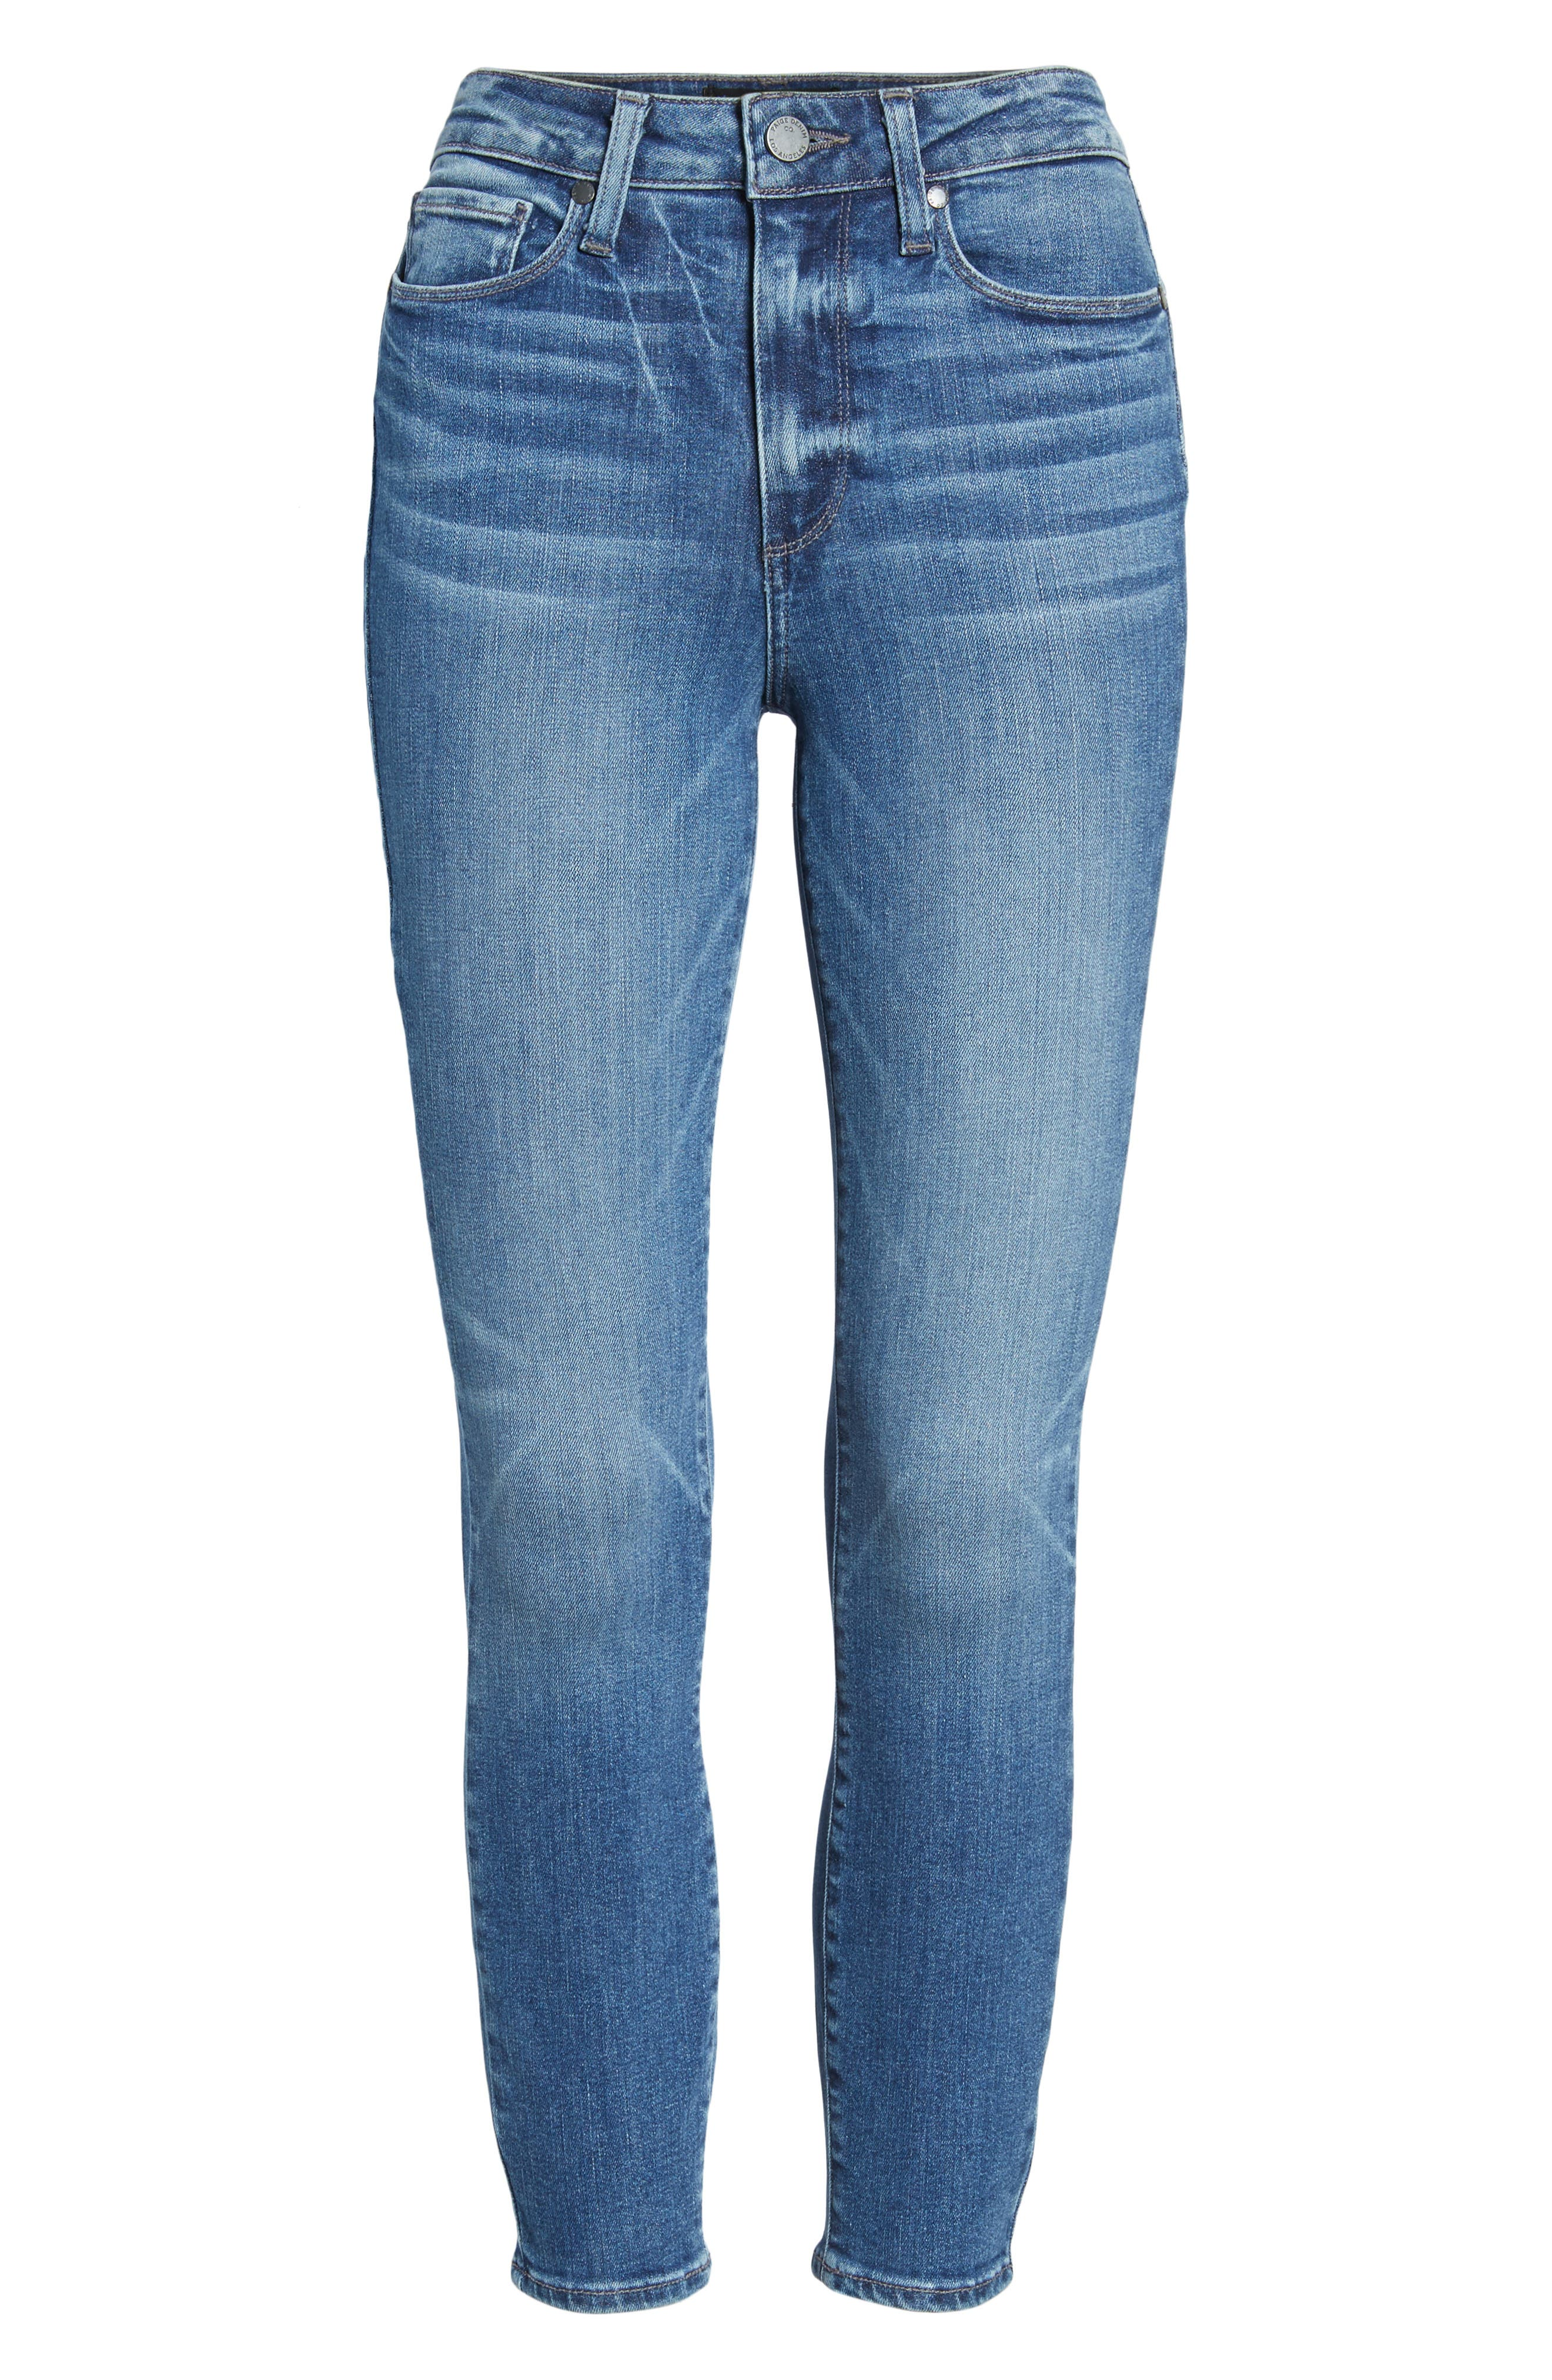 Hoxton High Waist Ankle Skinny Jeans,                             Alternate thumbnail 7, color,                             Bloomfield